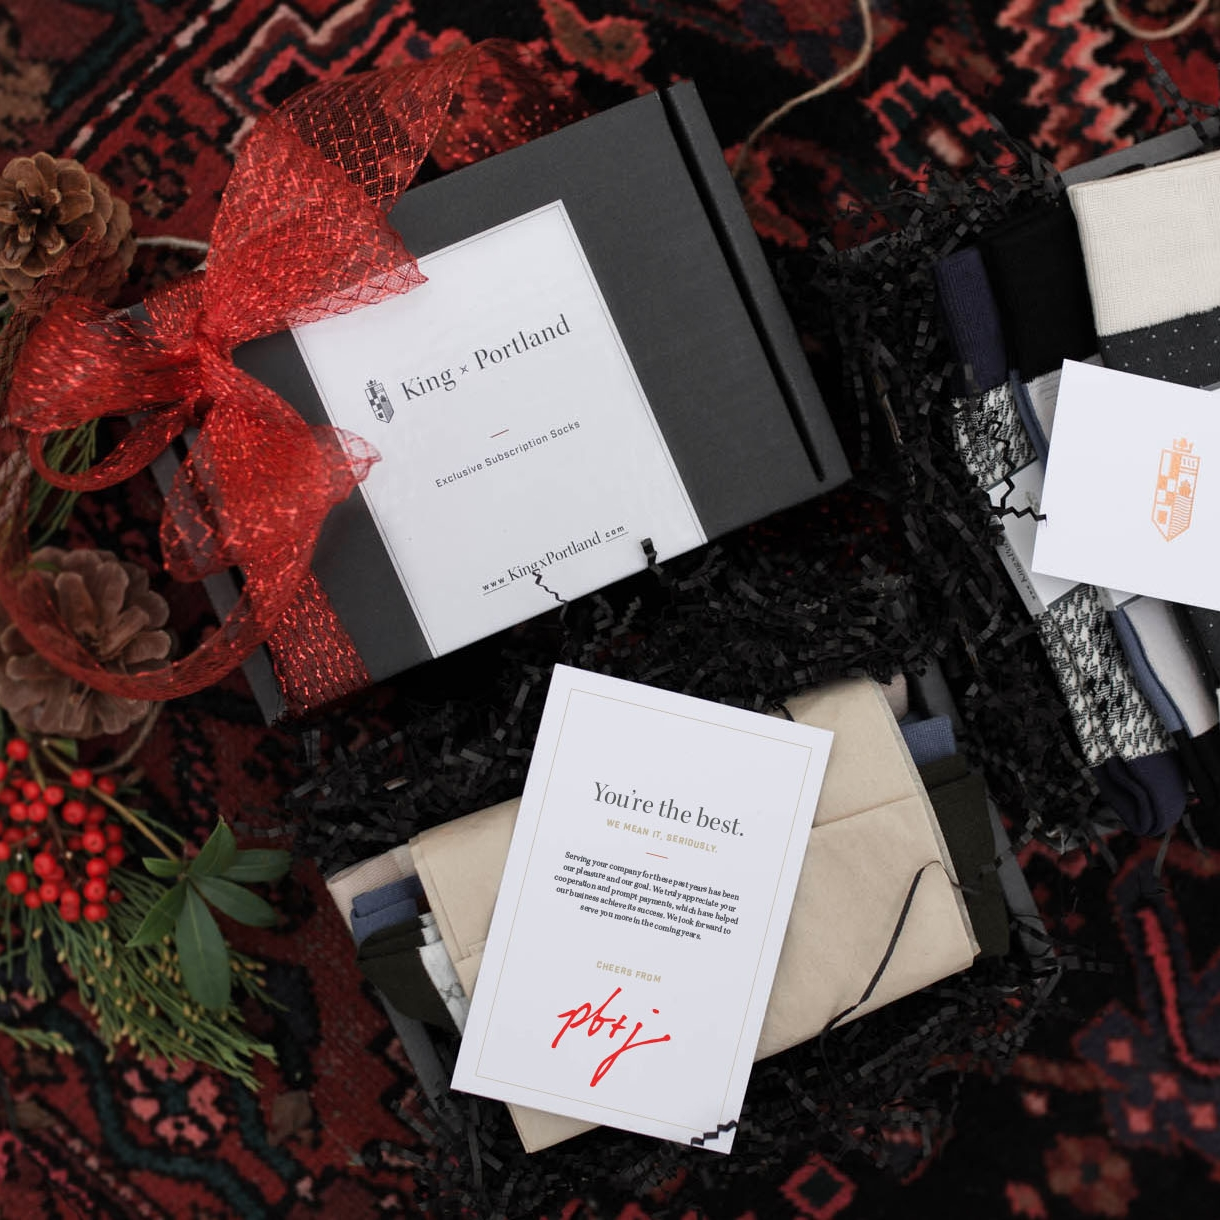 - SIGNATURE GIFT BOX10-20 boxes - $50/box20-40 boxes - $45/box41+boxes - $40/boxWHAT'S INCLUDEDThree pairs of stylish socks—seasonally curated.Elegant gift box and gift wrapping.Custom branded message card with a personalized message from you.We look after everything from order to tracked shipping.